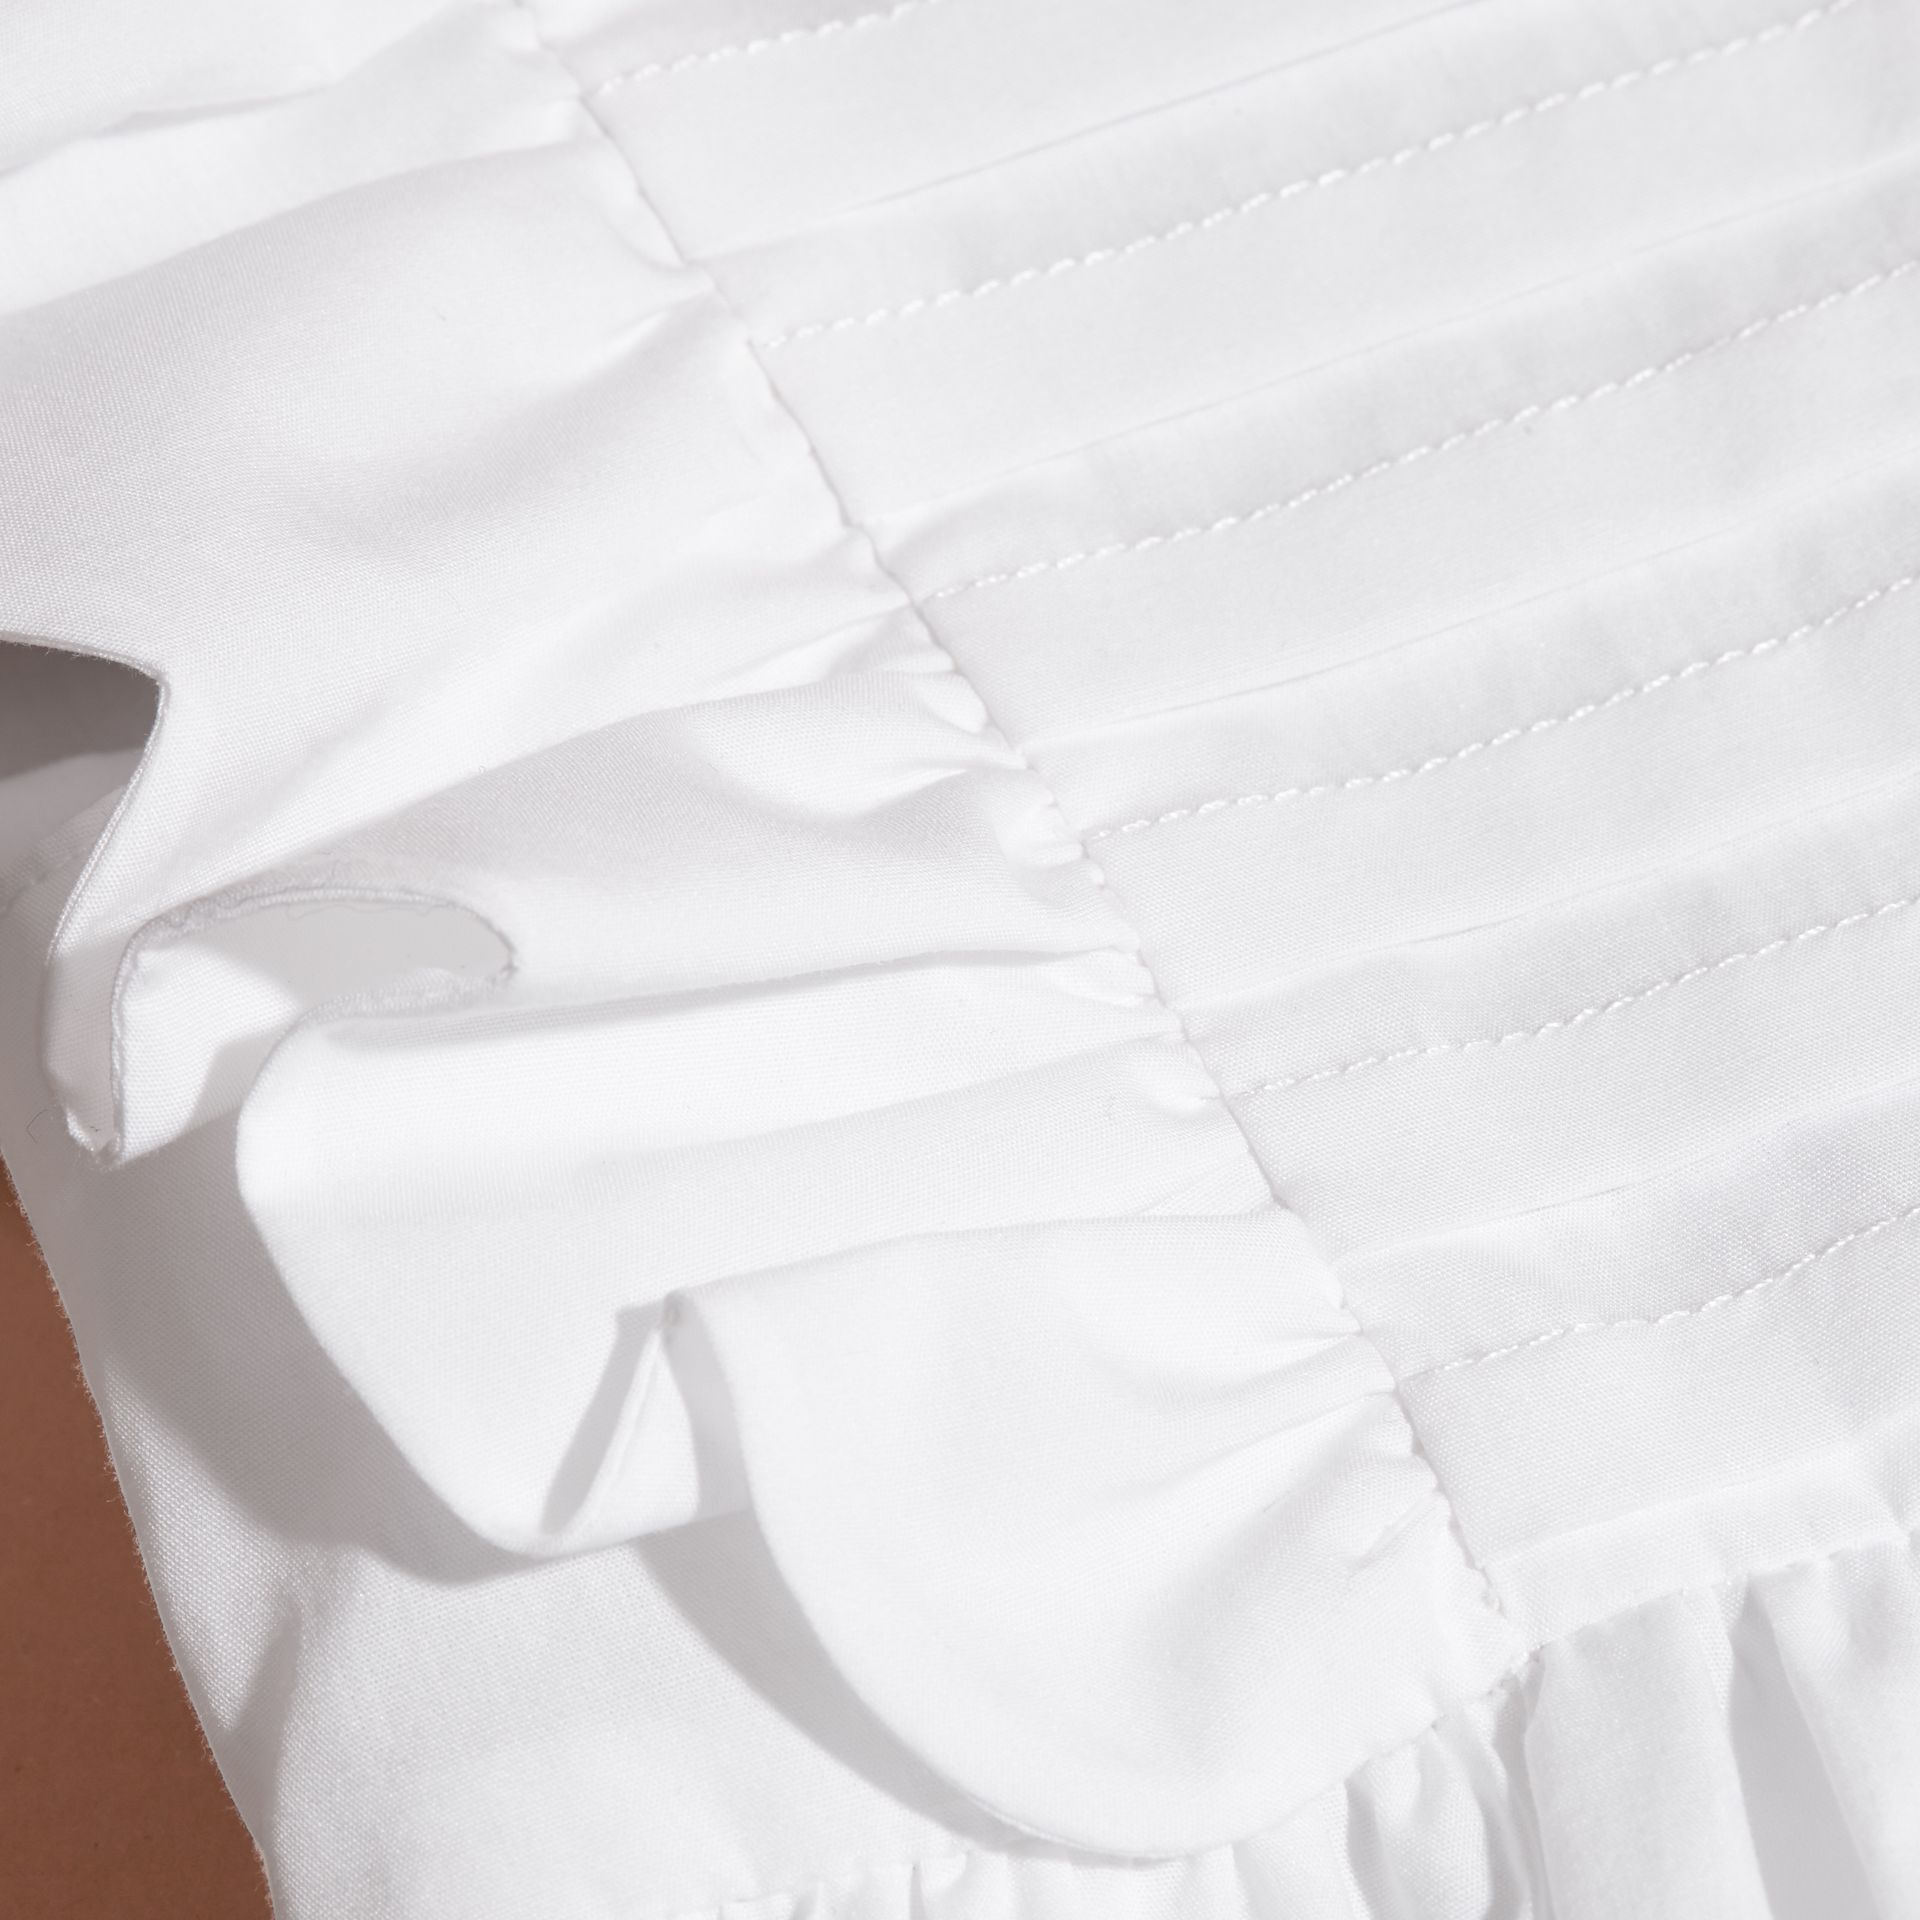 Ruffle and Pleat Detail Cotton Dress in White | Burberry - gallery image 2